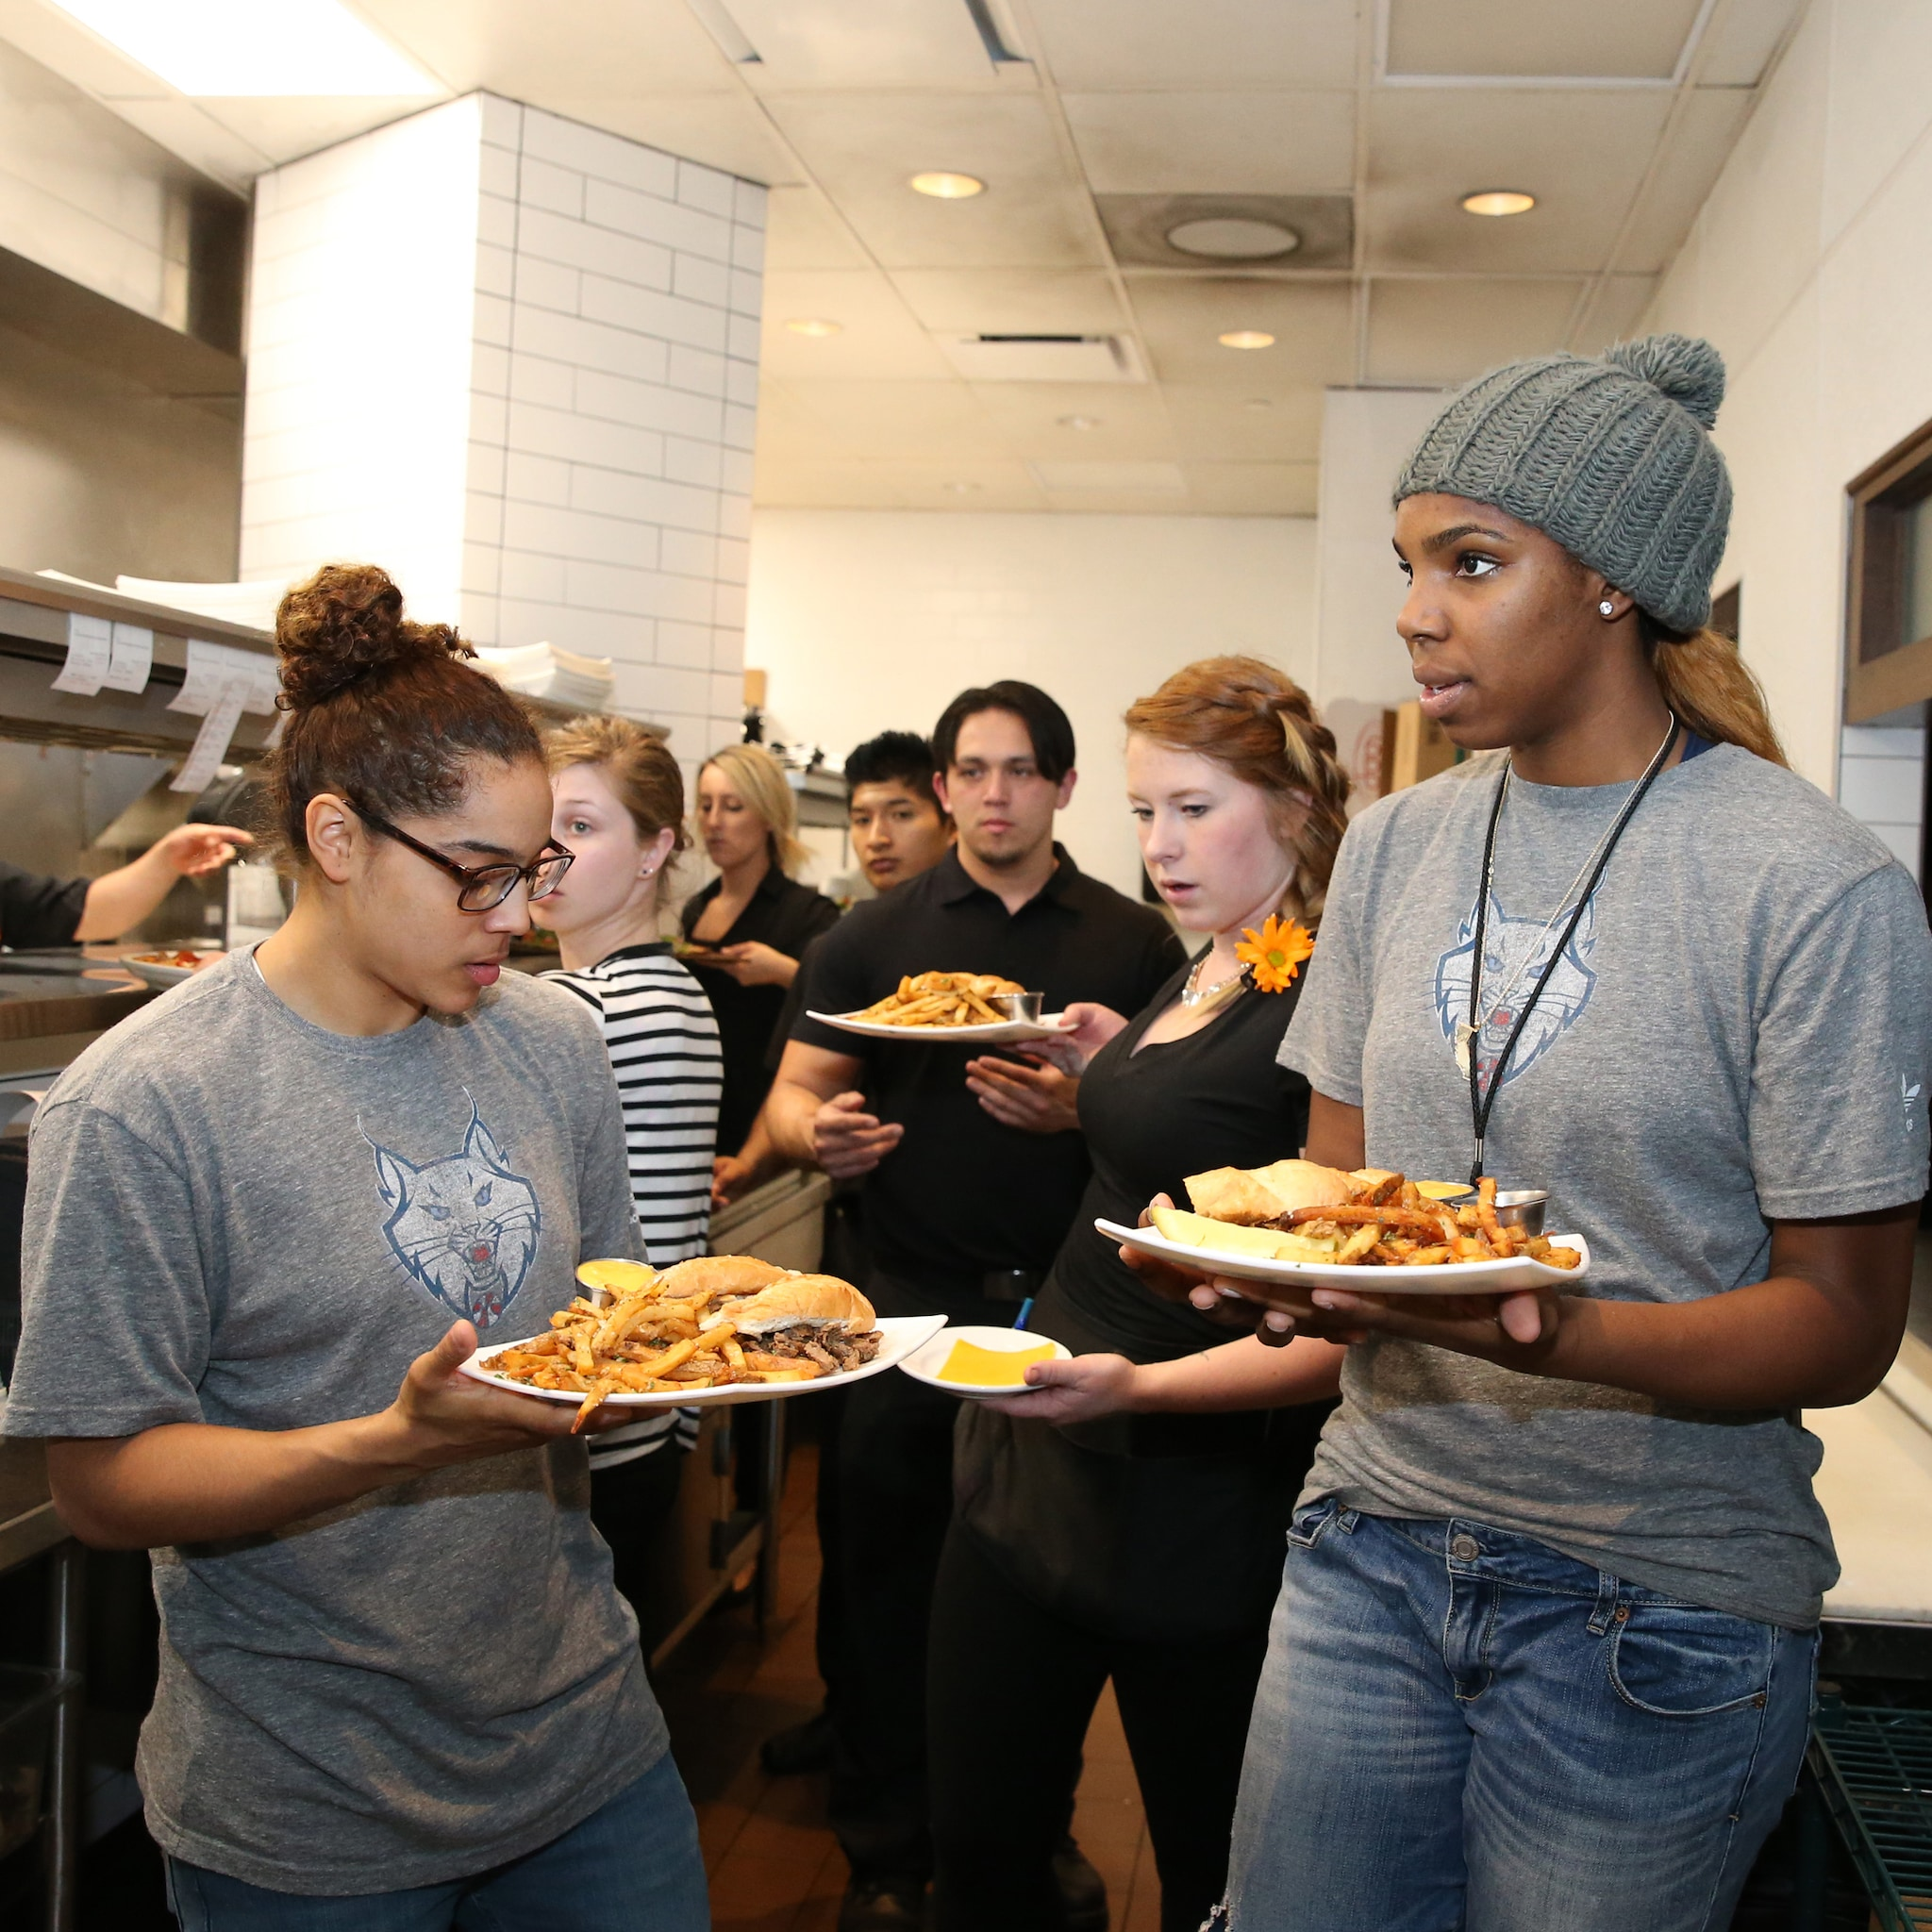 MINNEAPOLIS, MN - JUNE 3:  Jennifer O'Neill #0 and Reshanda Gray #21 of the Minnesota Lynx serve food during the Tip-A-Lynx fundraiser to benefit the Minnesota Lynx Fastbreak Foundation on June 3, 2015 at the Loop West End Bar & Restaurant in Minneapolis, Minnesota.  NOTE TO USER: User expressly acknowledges and agrees that, by downloading and or using this Photograph, user is consenting to the terms and conditions of the Getty Images License Agreement. Mandatory Copyright Notice: Copyright 2015 NBAE (Photo by David Sherman/NBAE via Getty Images)